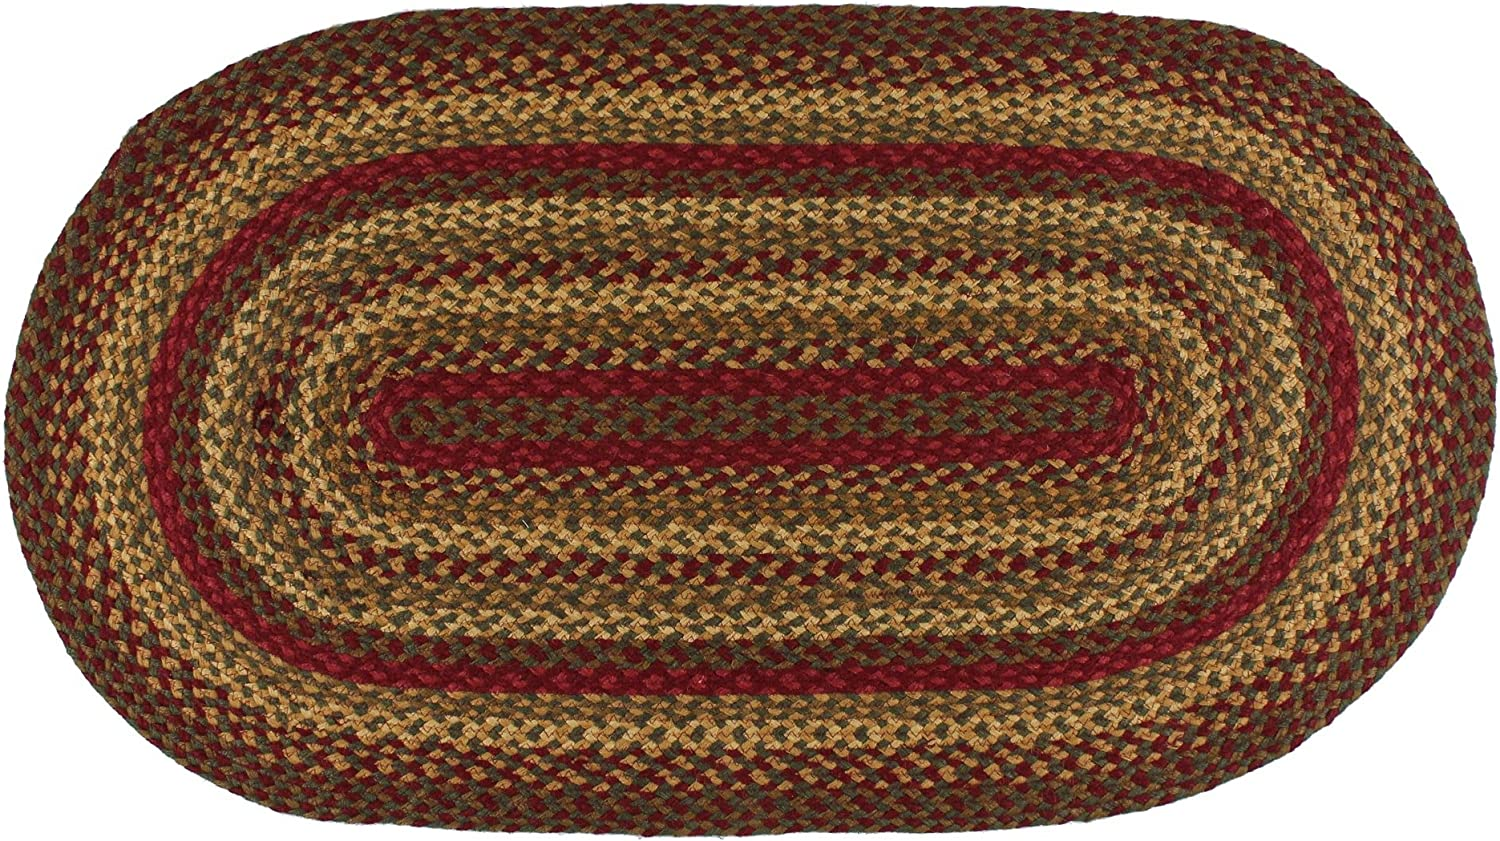 "IHF Home Decor Braided Area Rug | Cinnamon Design | Oval Indoor Outdoor Floormat | Wine, Sage, Tan Handwoven Reversible Carpet Natural Jute Fiber - 22"" x 72"""